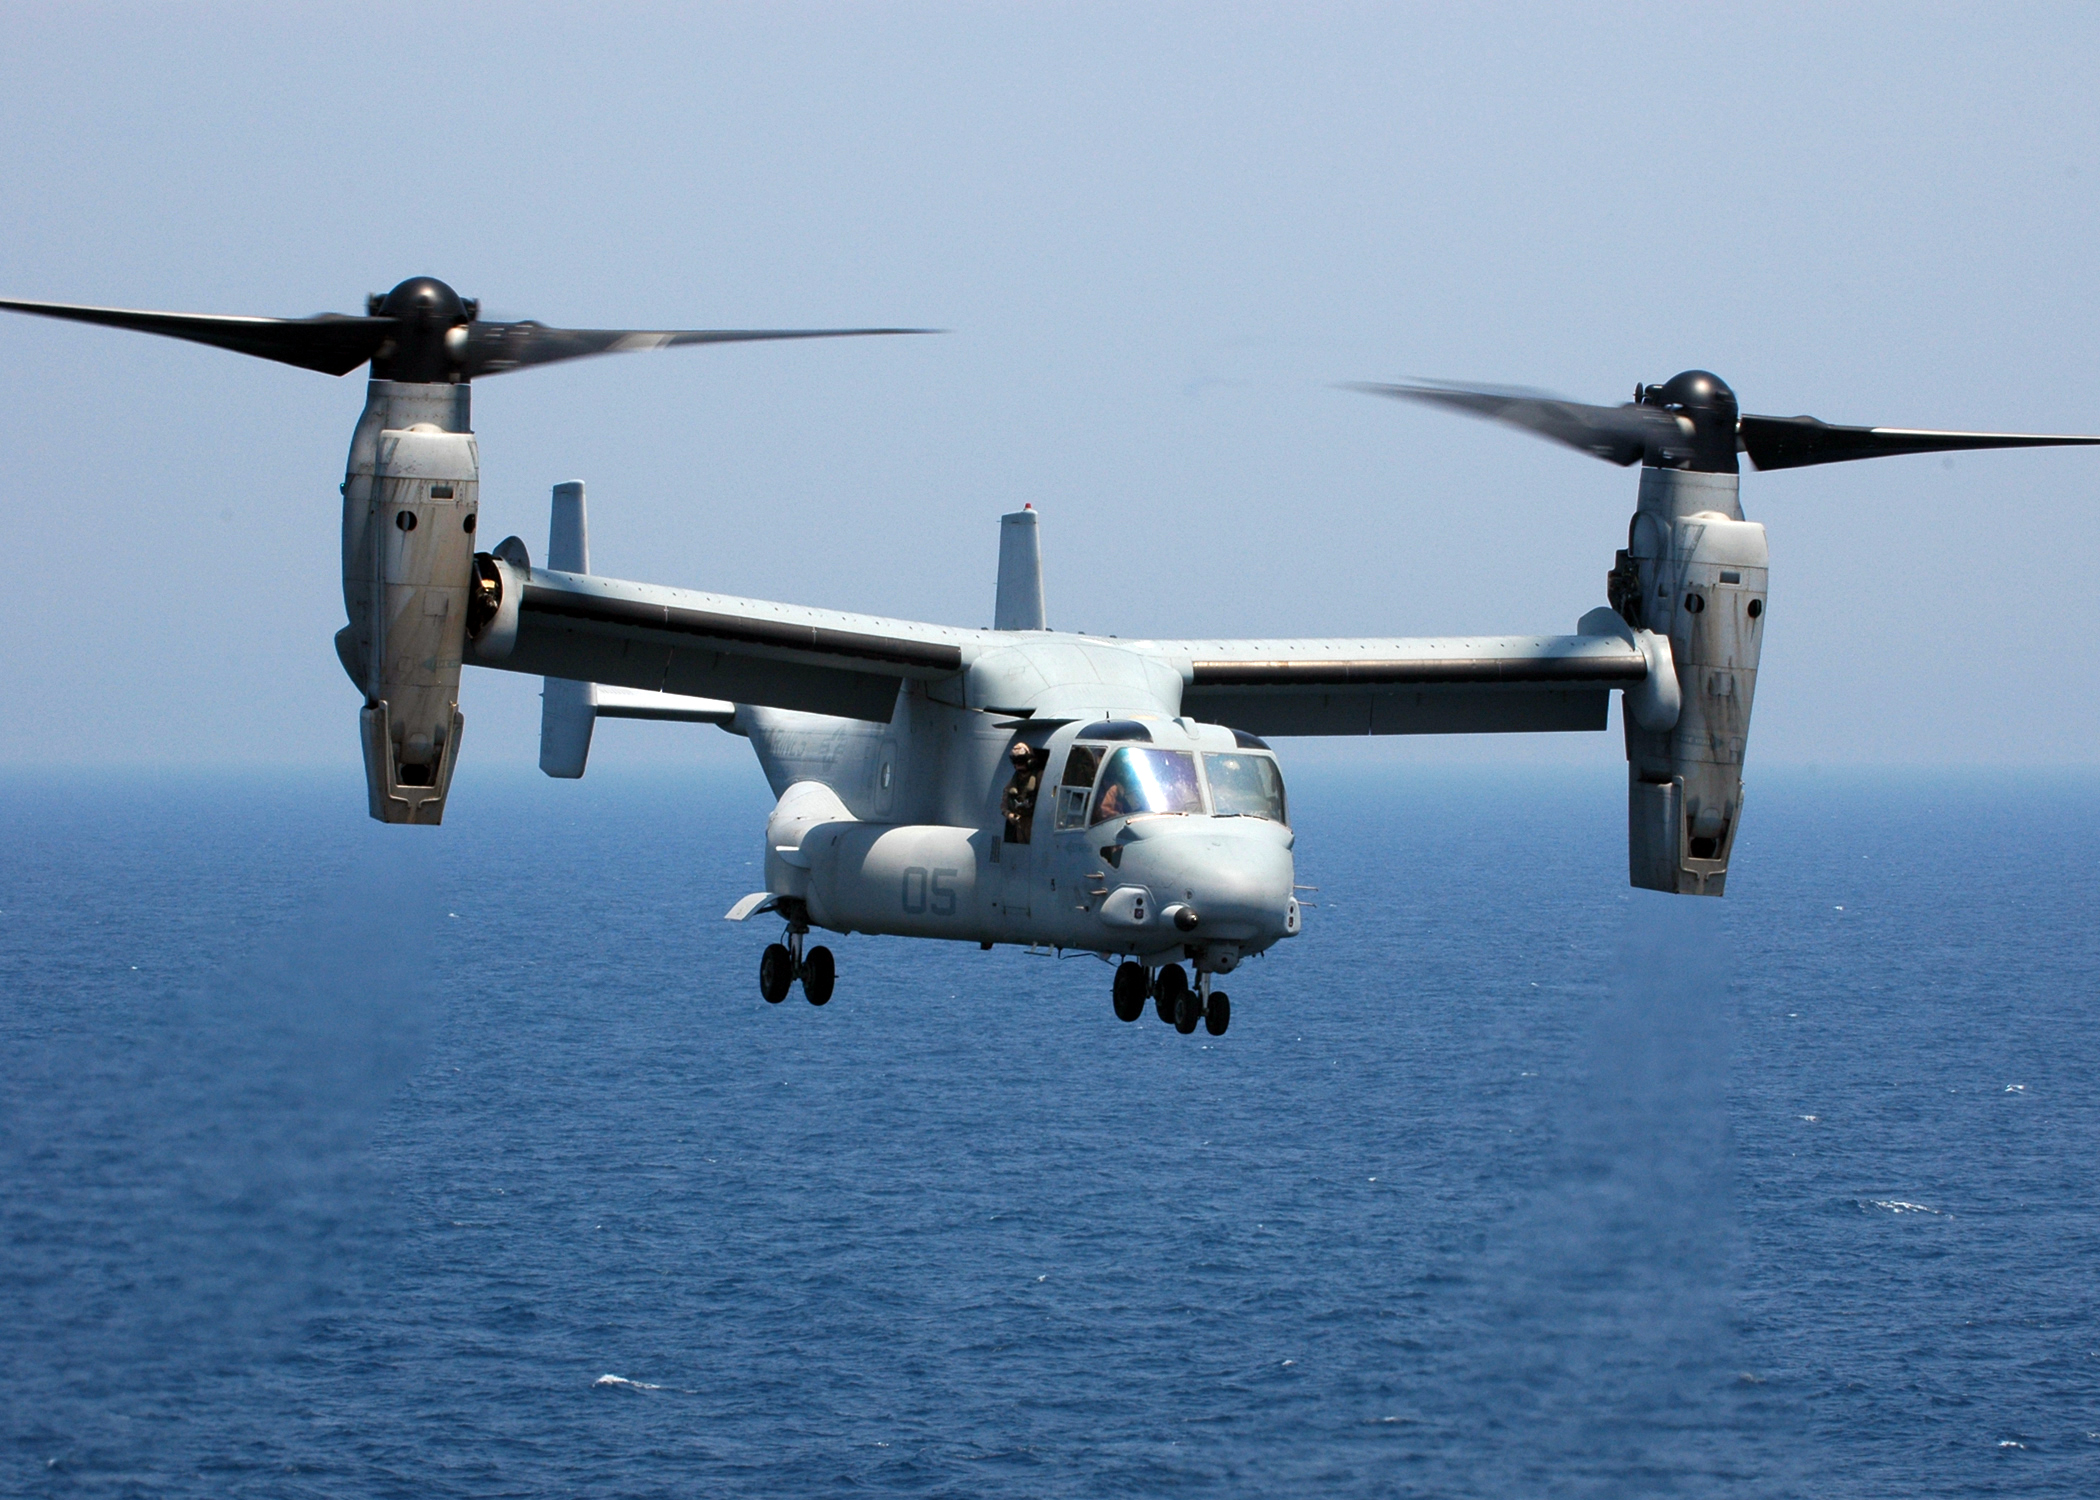 080722-N-6822T-081 ATLANTIC OCEAN (July 22, 2008) An MV-22 Osprey assigned Marine Medium Tiltrotor Squadron (VMM) 263 prepares to land on the flight deck of the multi-purpose amphibious assault ship USS Iwo Jima (LHD 7). Iwo Jima is participating in Joint Task Force Exercise 08-4 as a part of the Iwo Jima Expeditionary Strike Group. (U.S. Navy photo by Mass Communication Specialist 1st Class Daniel A. Taylor/Released)